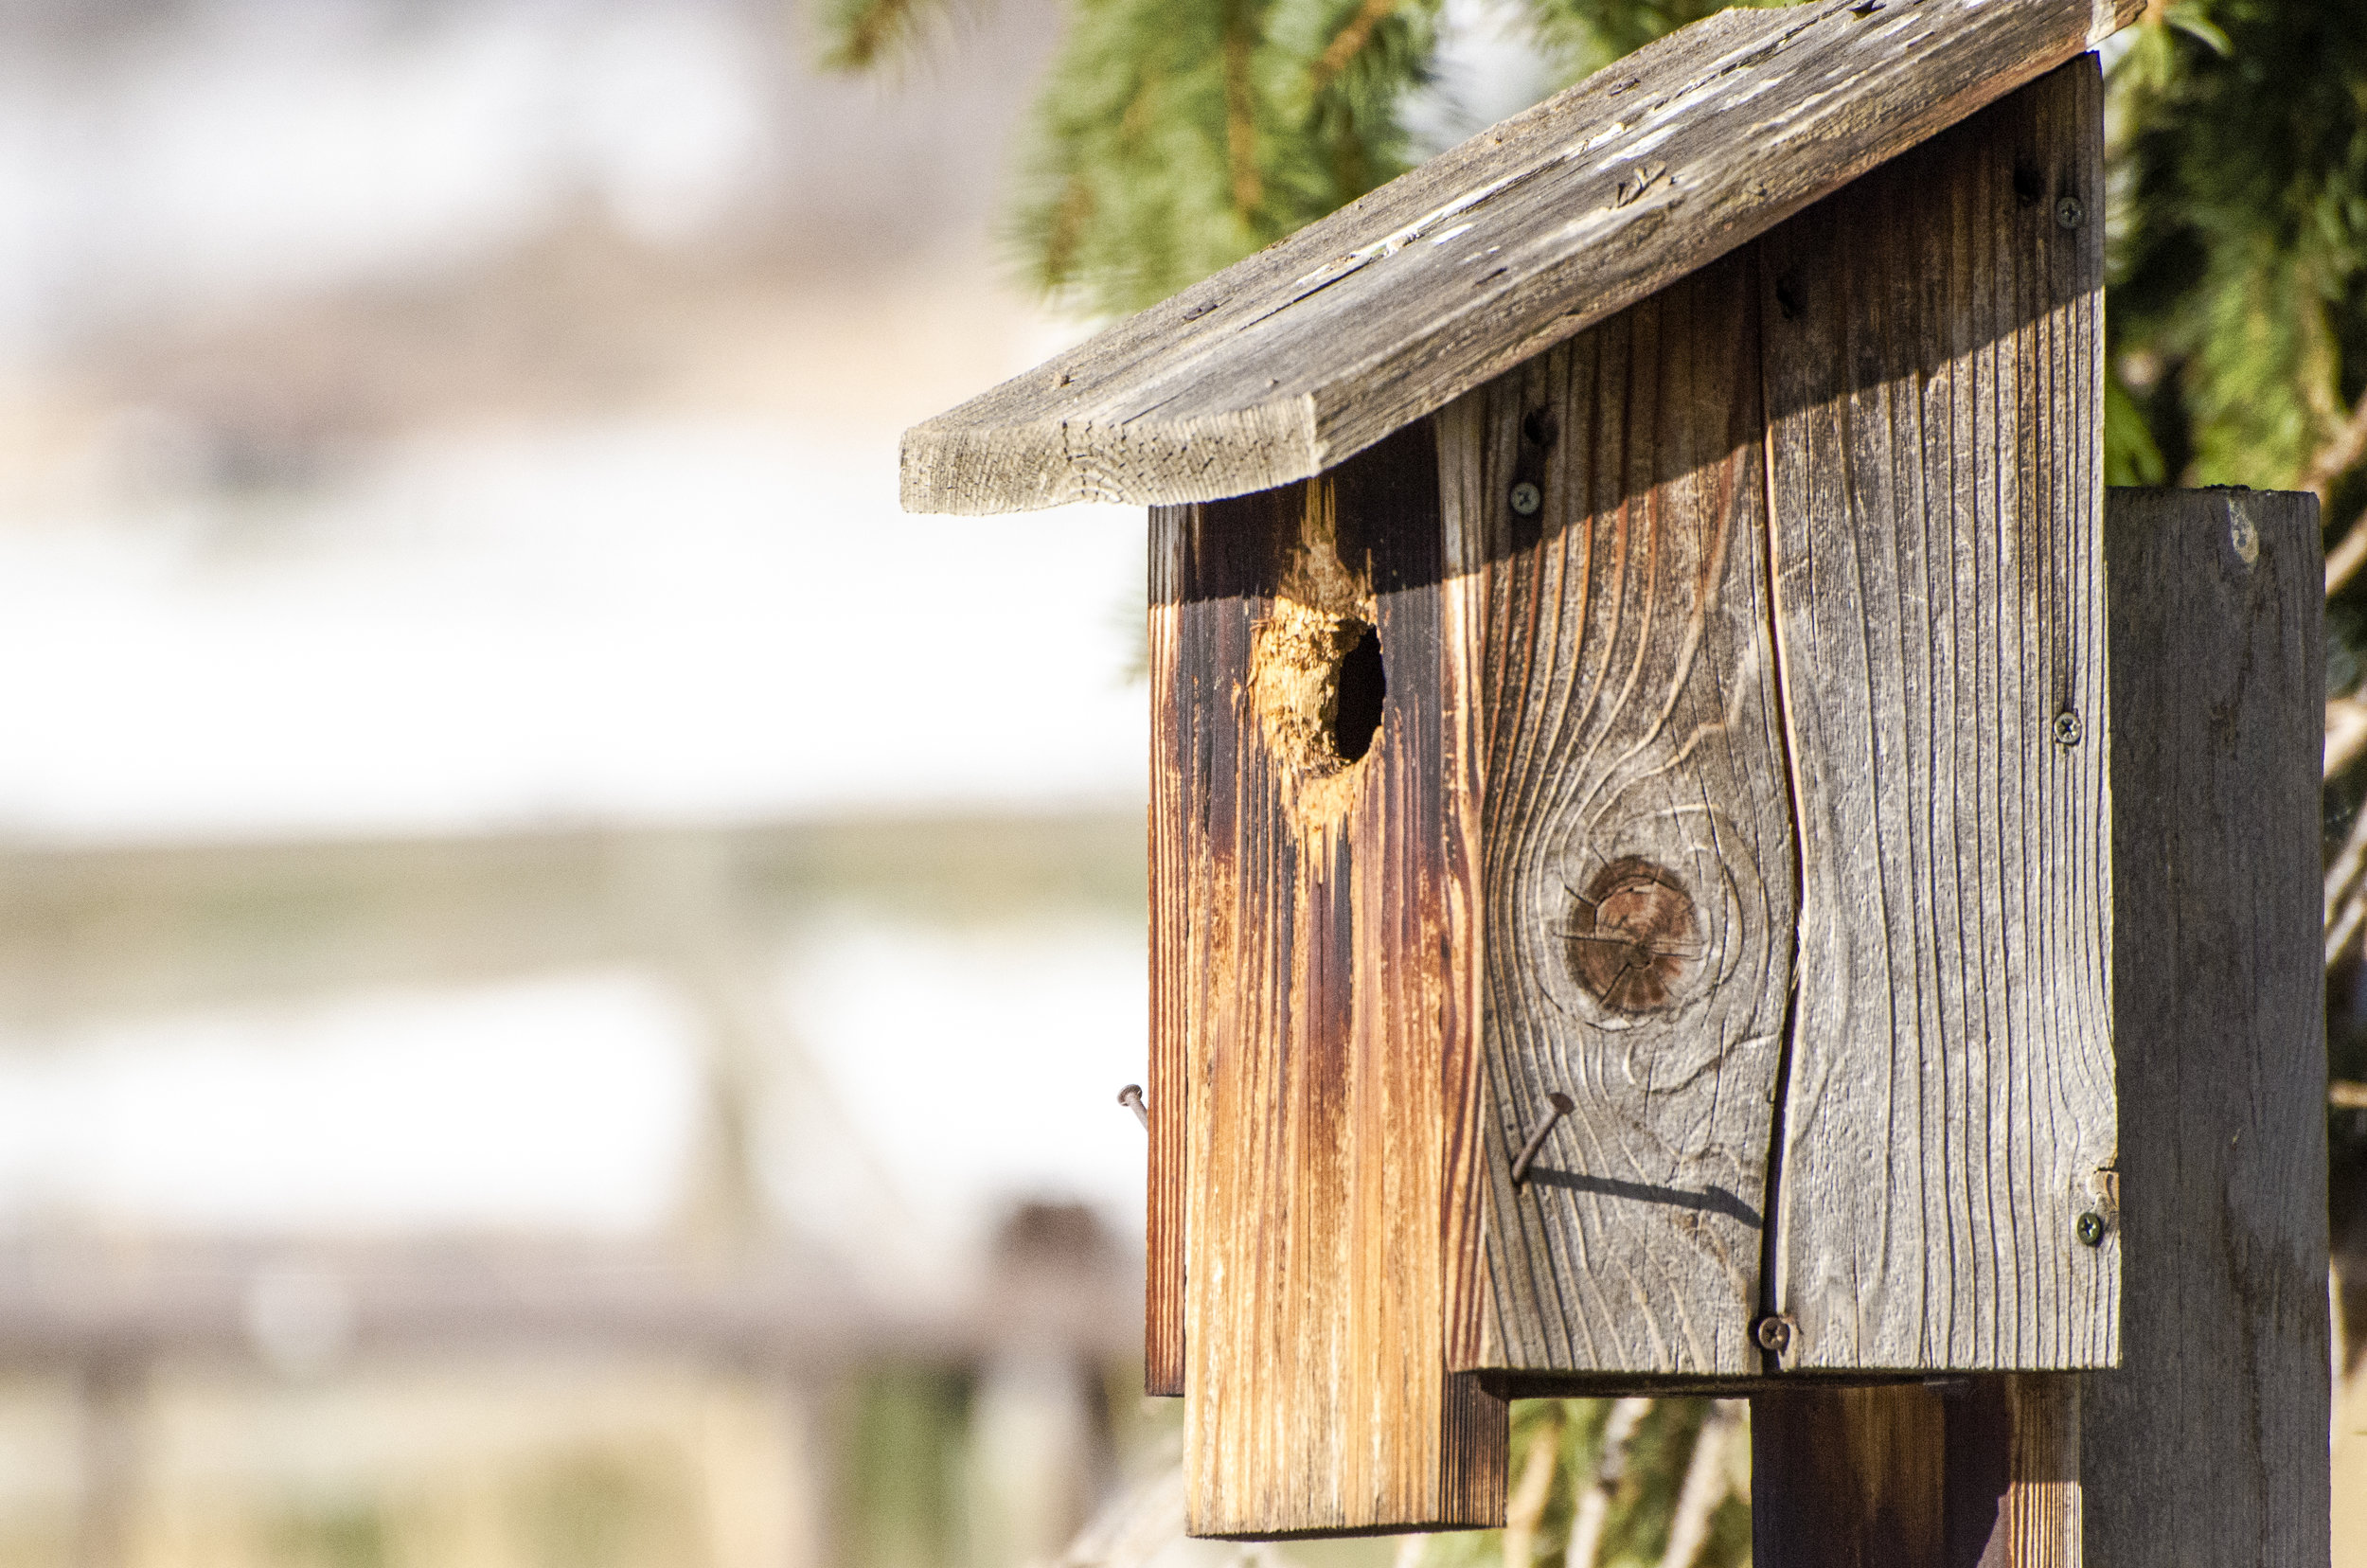 One of the 250 bluebird houses Mickey installed to brighten up the area around Bell Mountain Ranch.